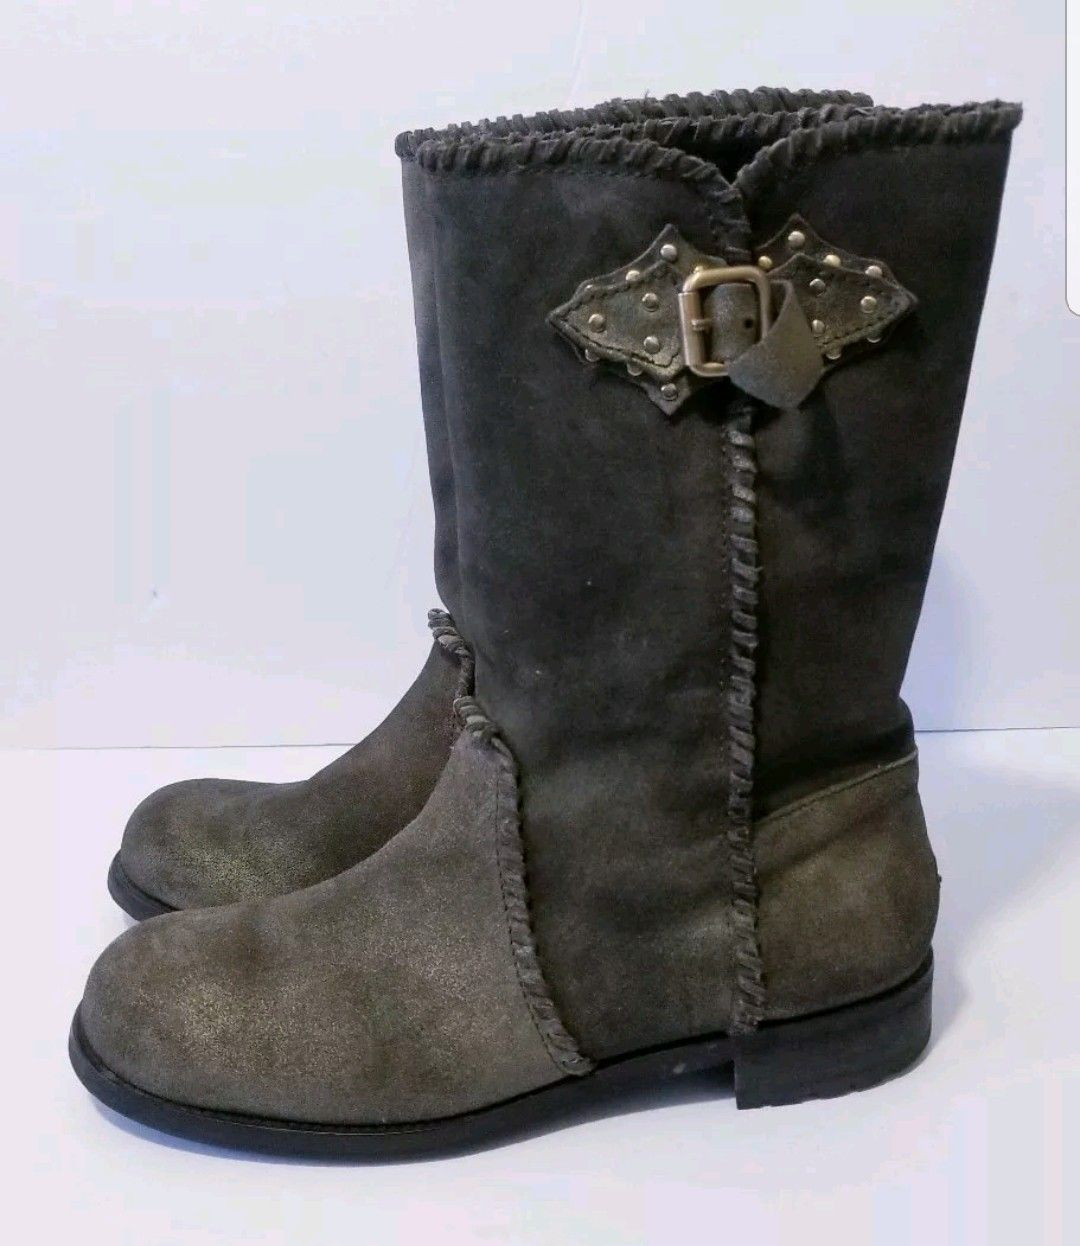 5016a7531ff Donald Pliner Gita Combat Boots Size 9 M Brown Suede Distressed Lace Up  Hipster